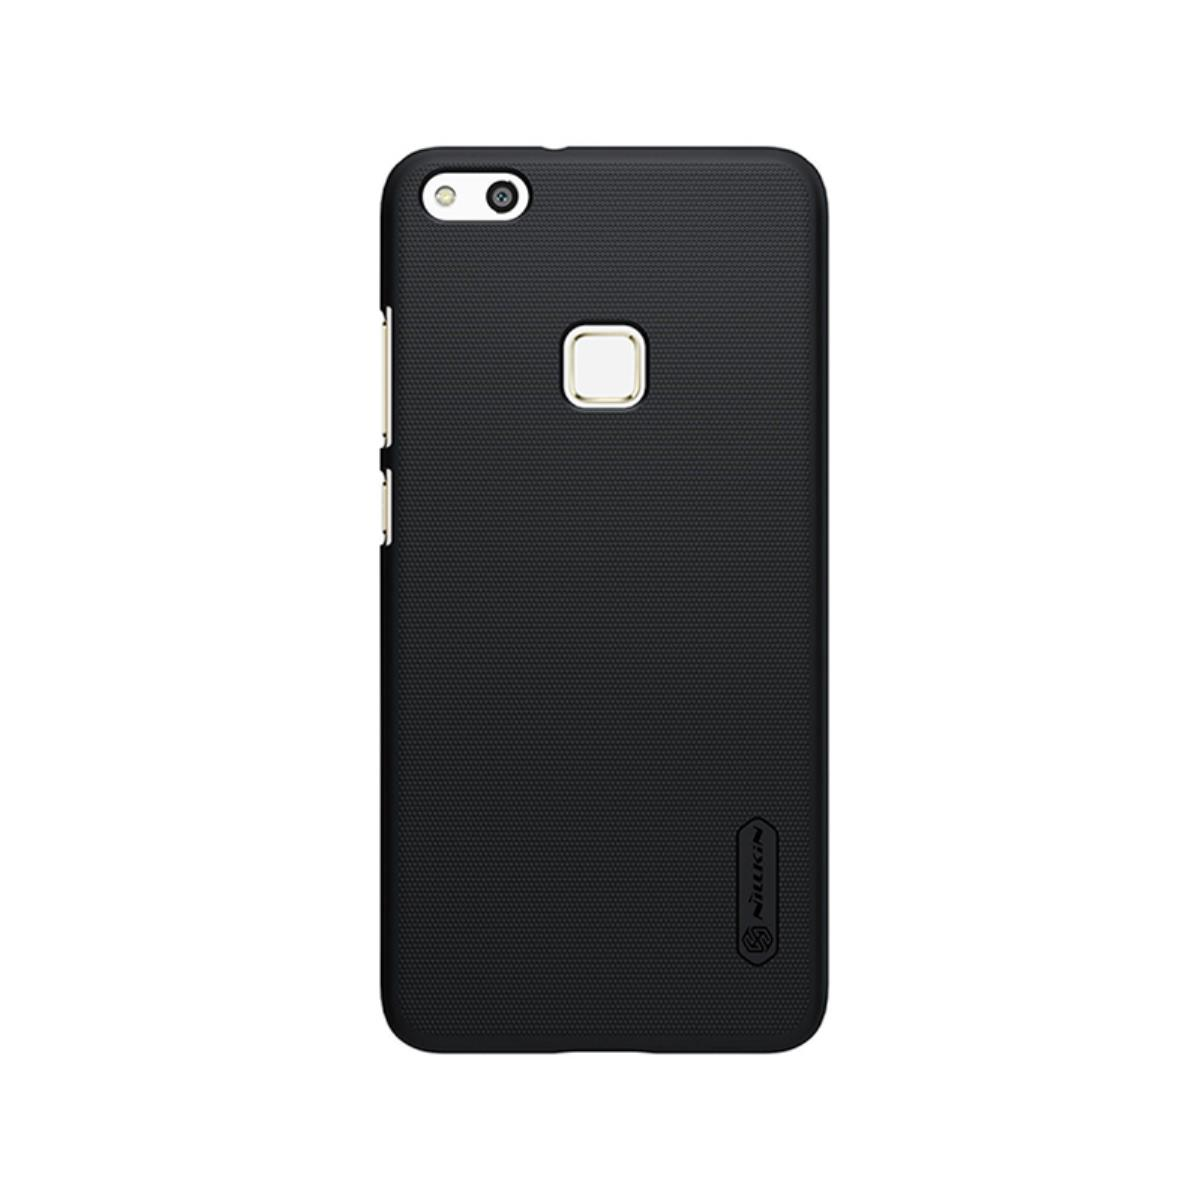 CAPA  SILICONE NILLKIN IPHONE 7 PLUS TRANSPARENTE